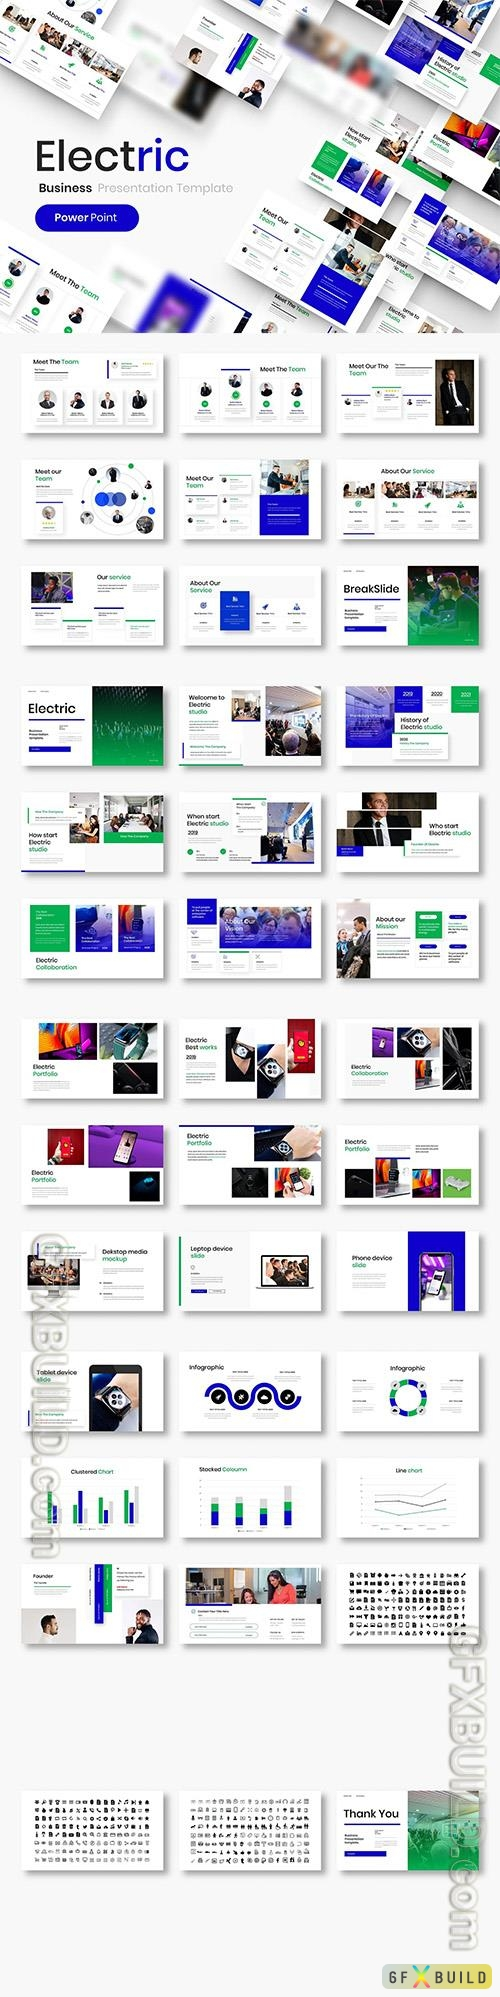 Electric - Business Powerpoint, Keynote and Google Slides Template